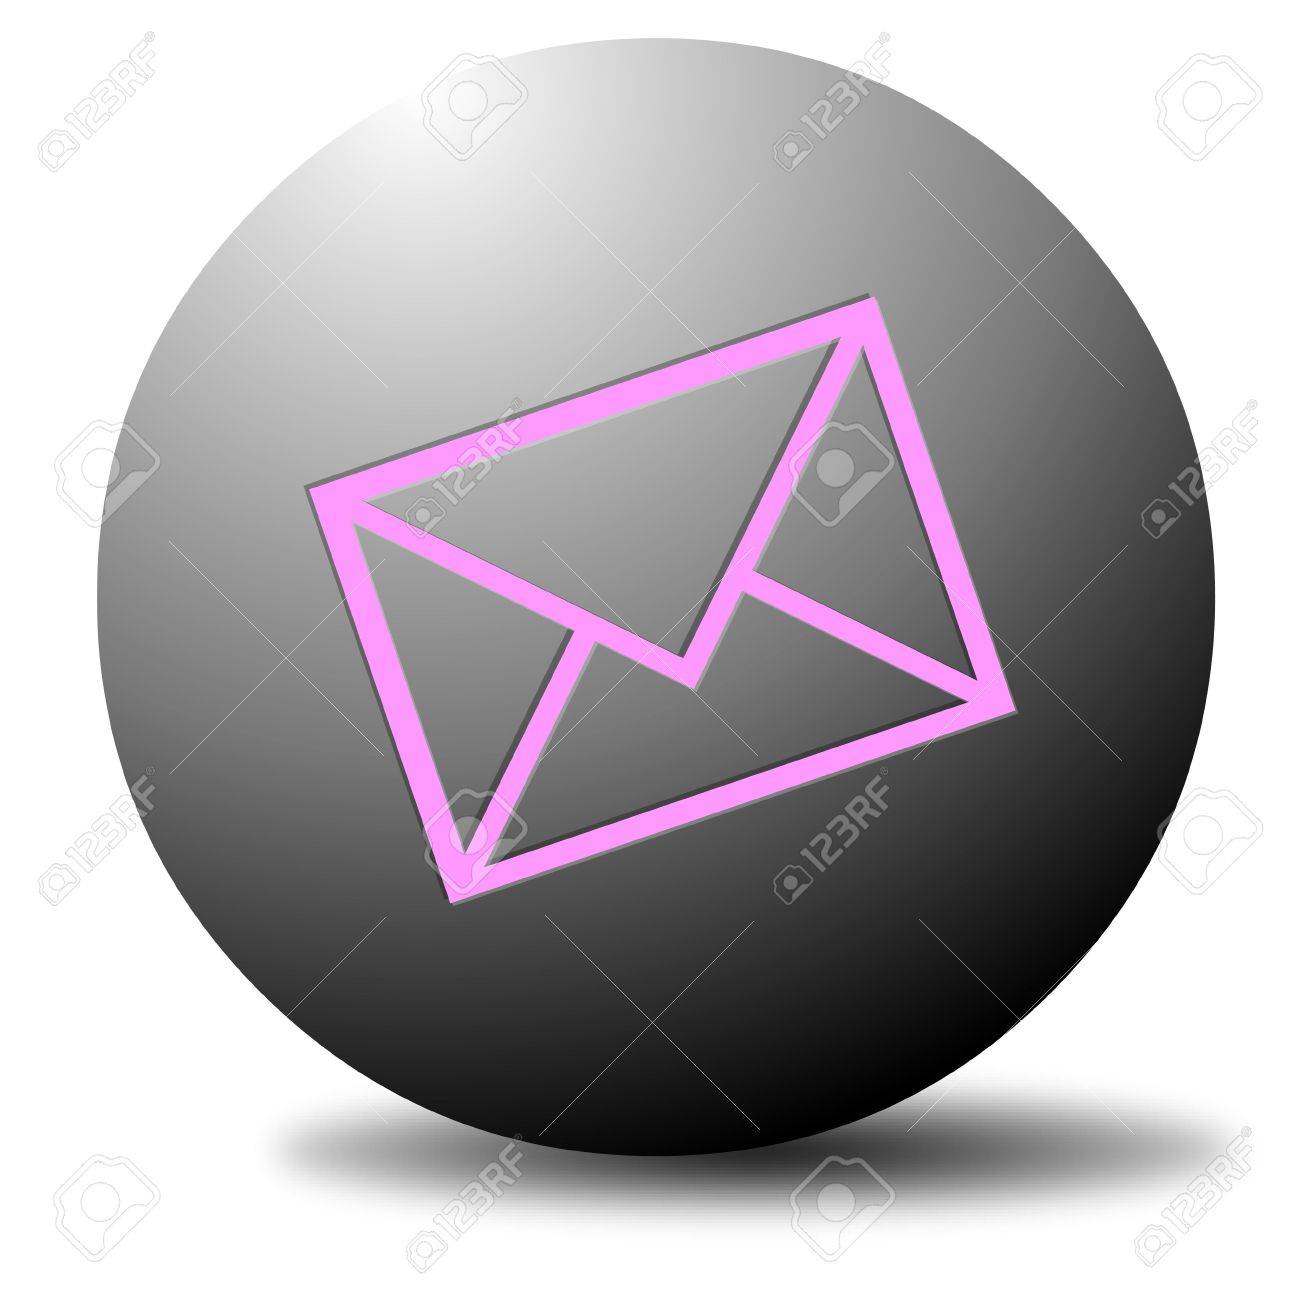 Colored email icon for use as a contact button Stock Photo - 3538781